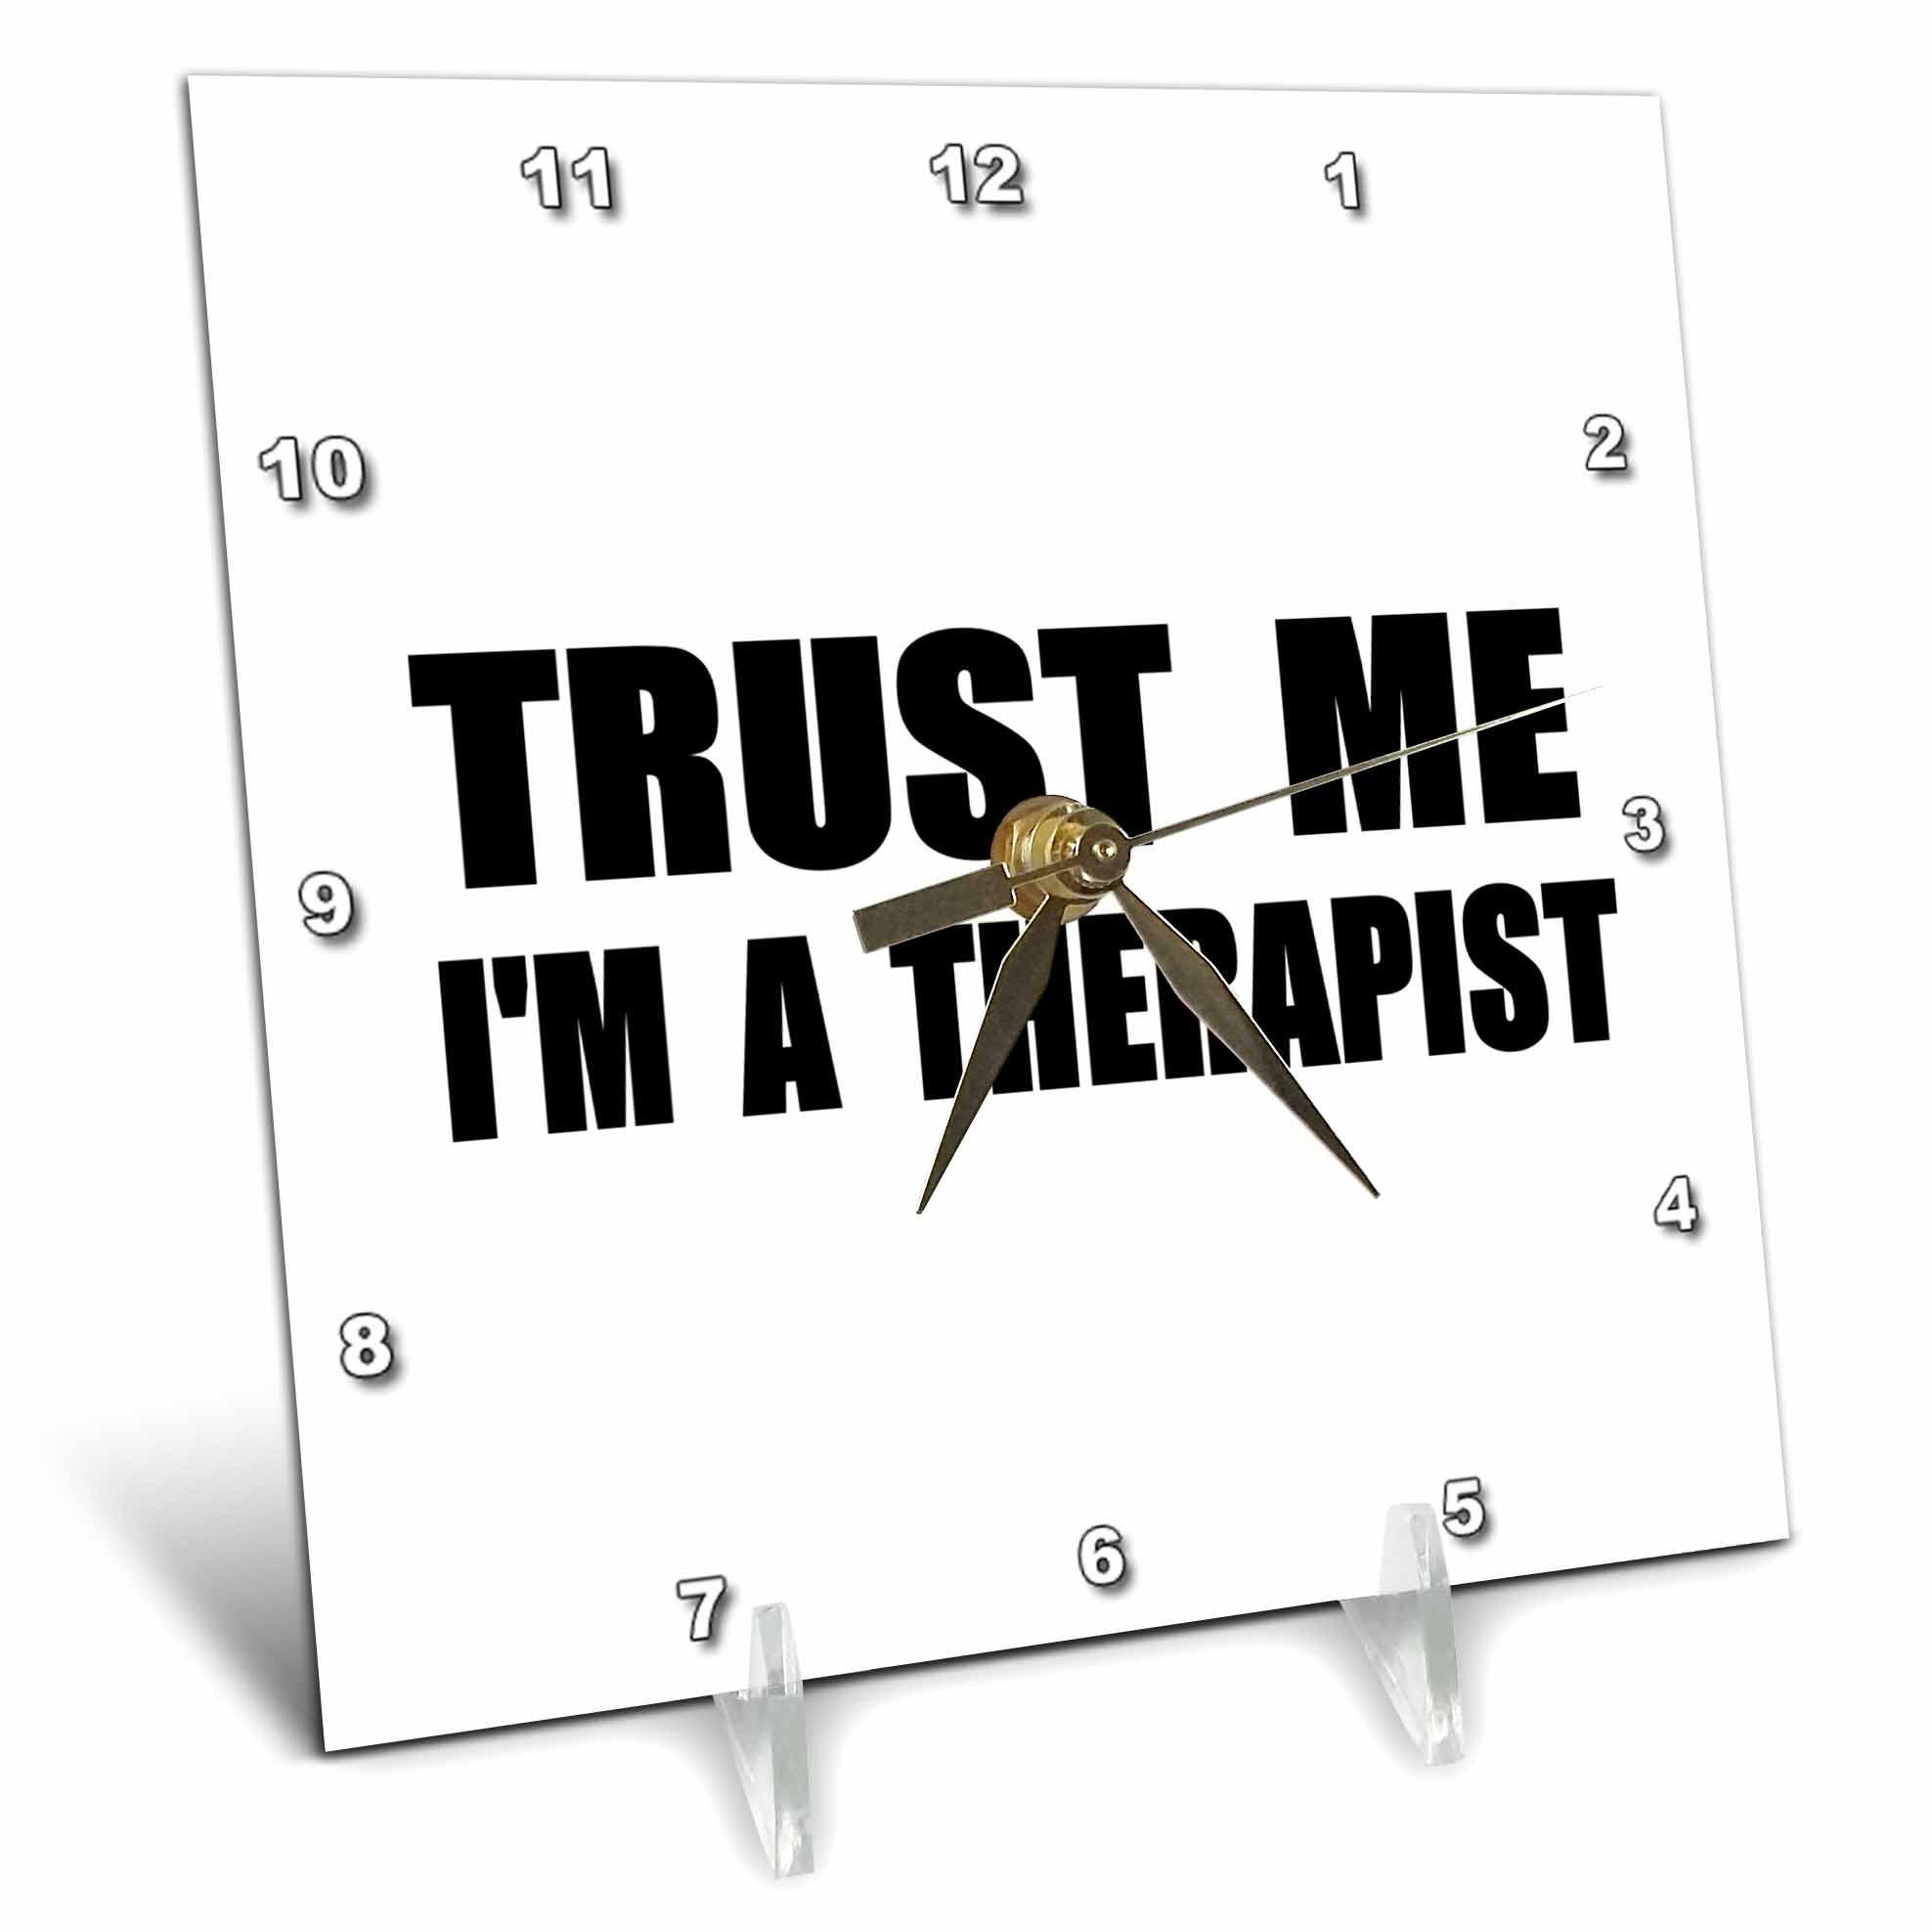 3dRose Trust me Im a Therapist fun work humor Funny therapy job gift, Desk Clock, 6 by 6-inch by 3dRose